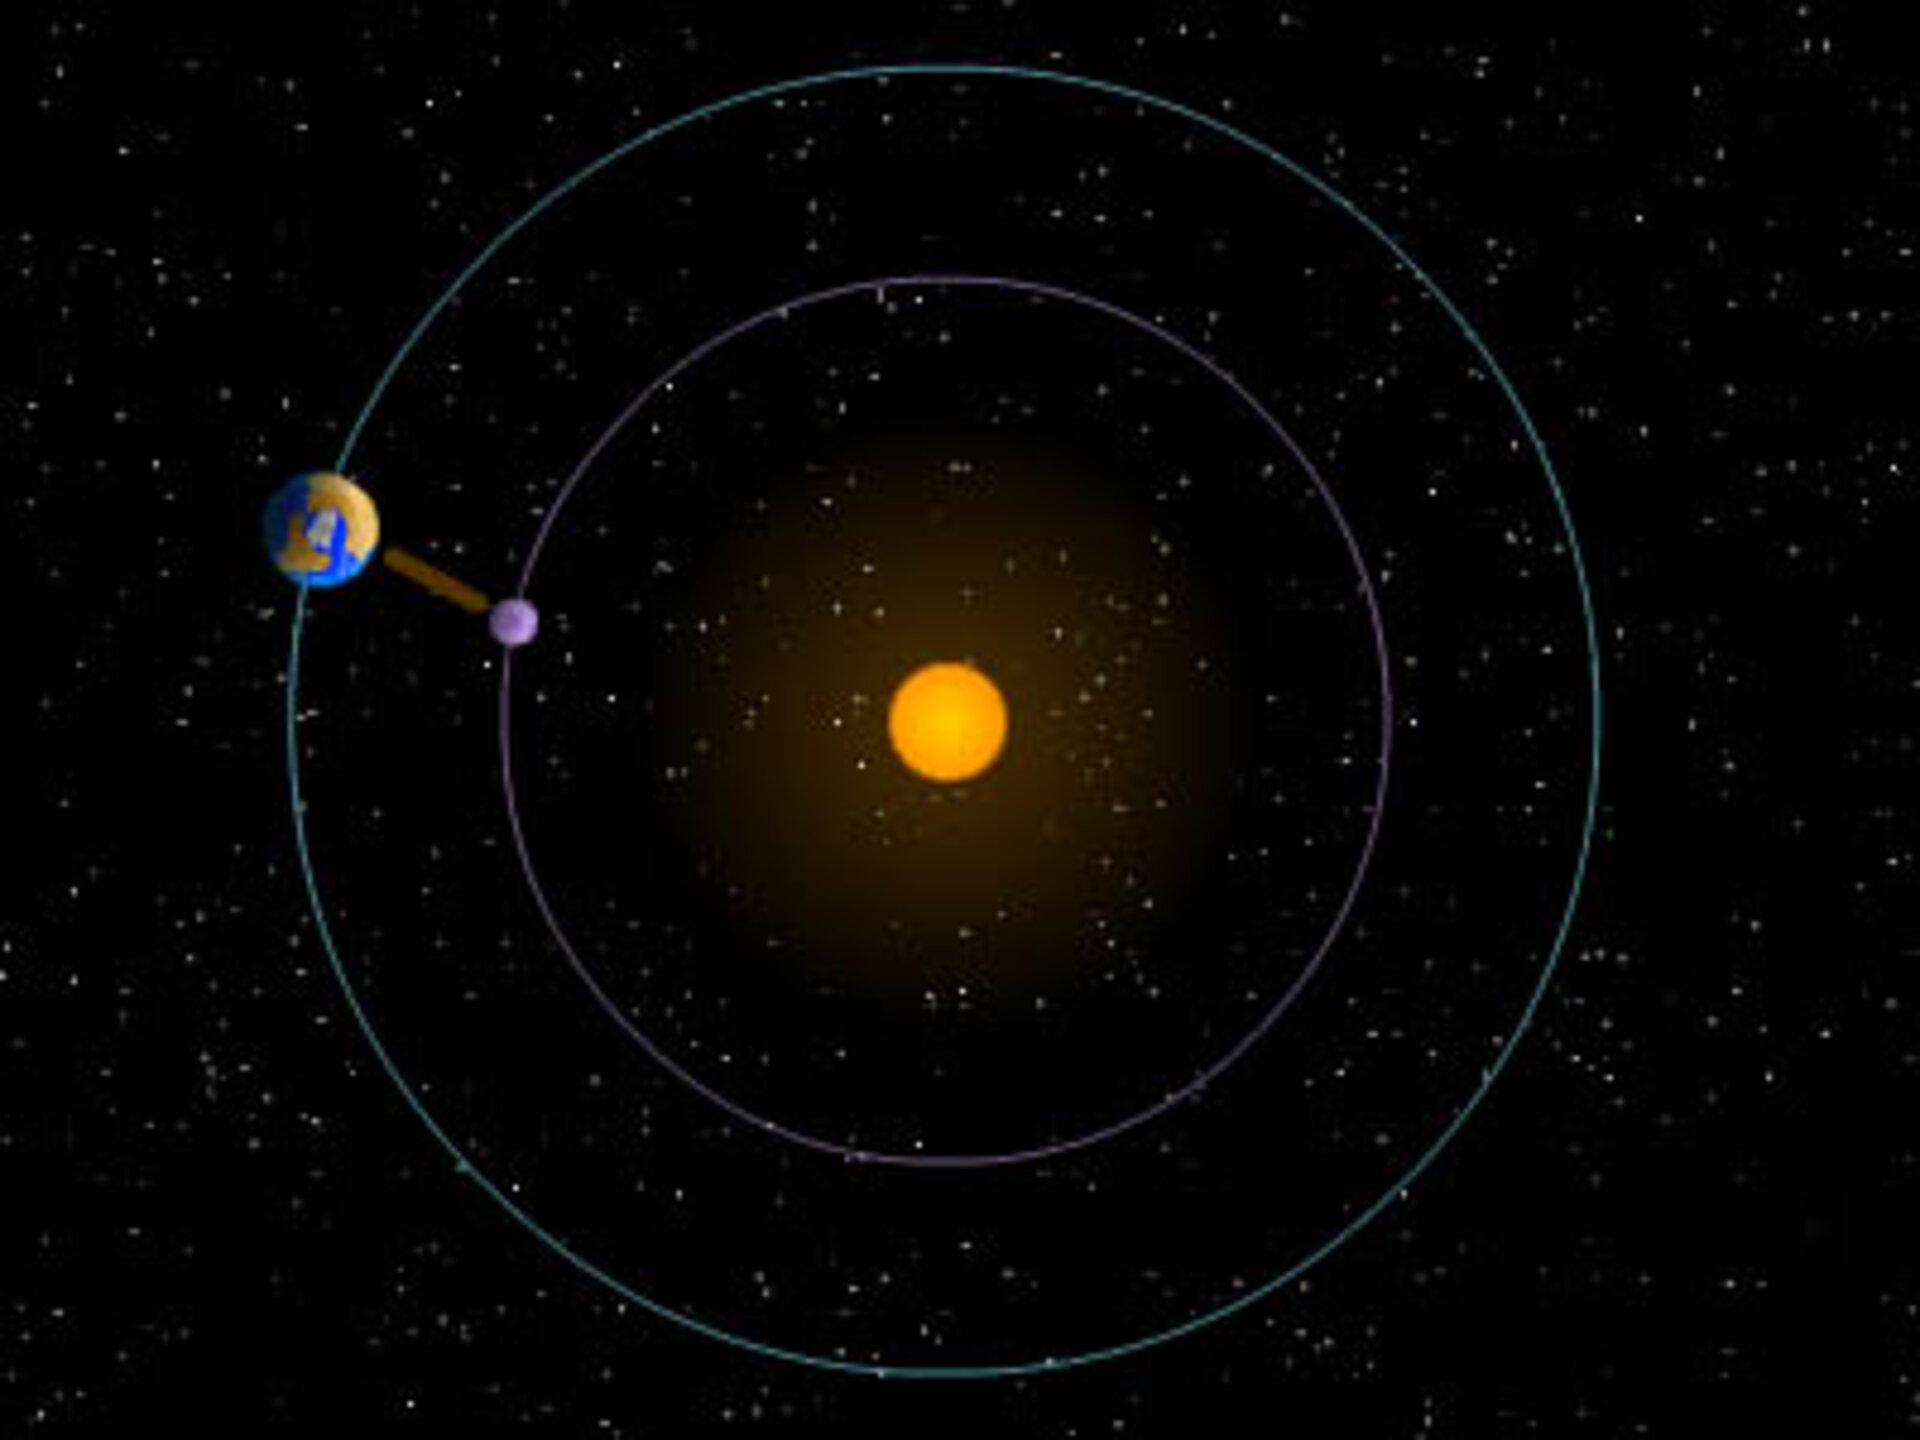 Spacecraft in 'sync' with Earth orbit